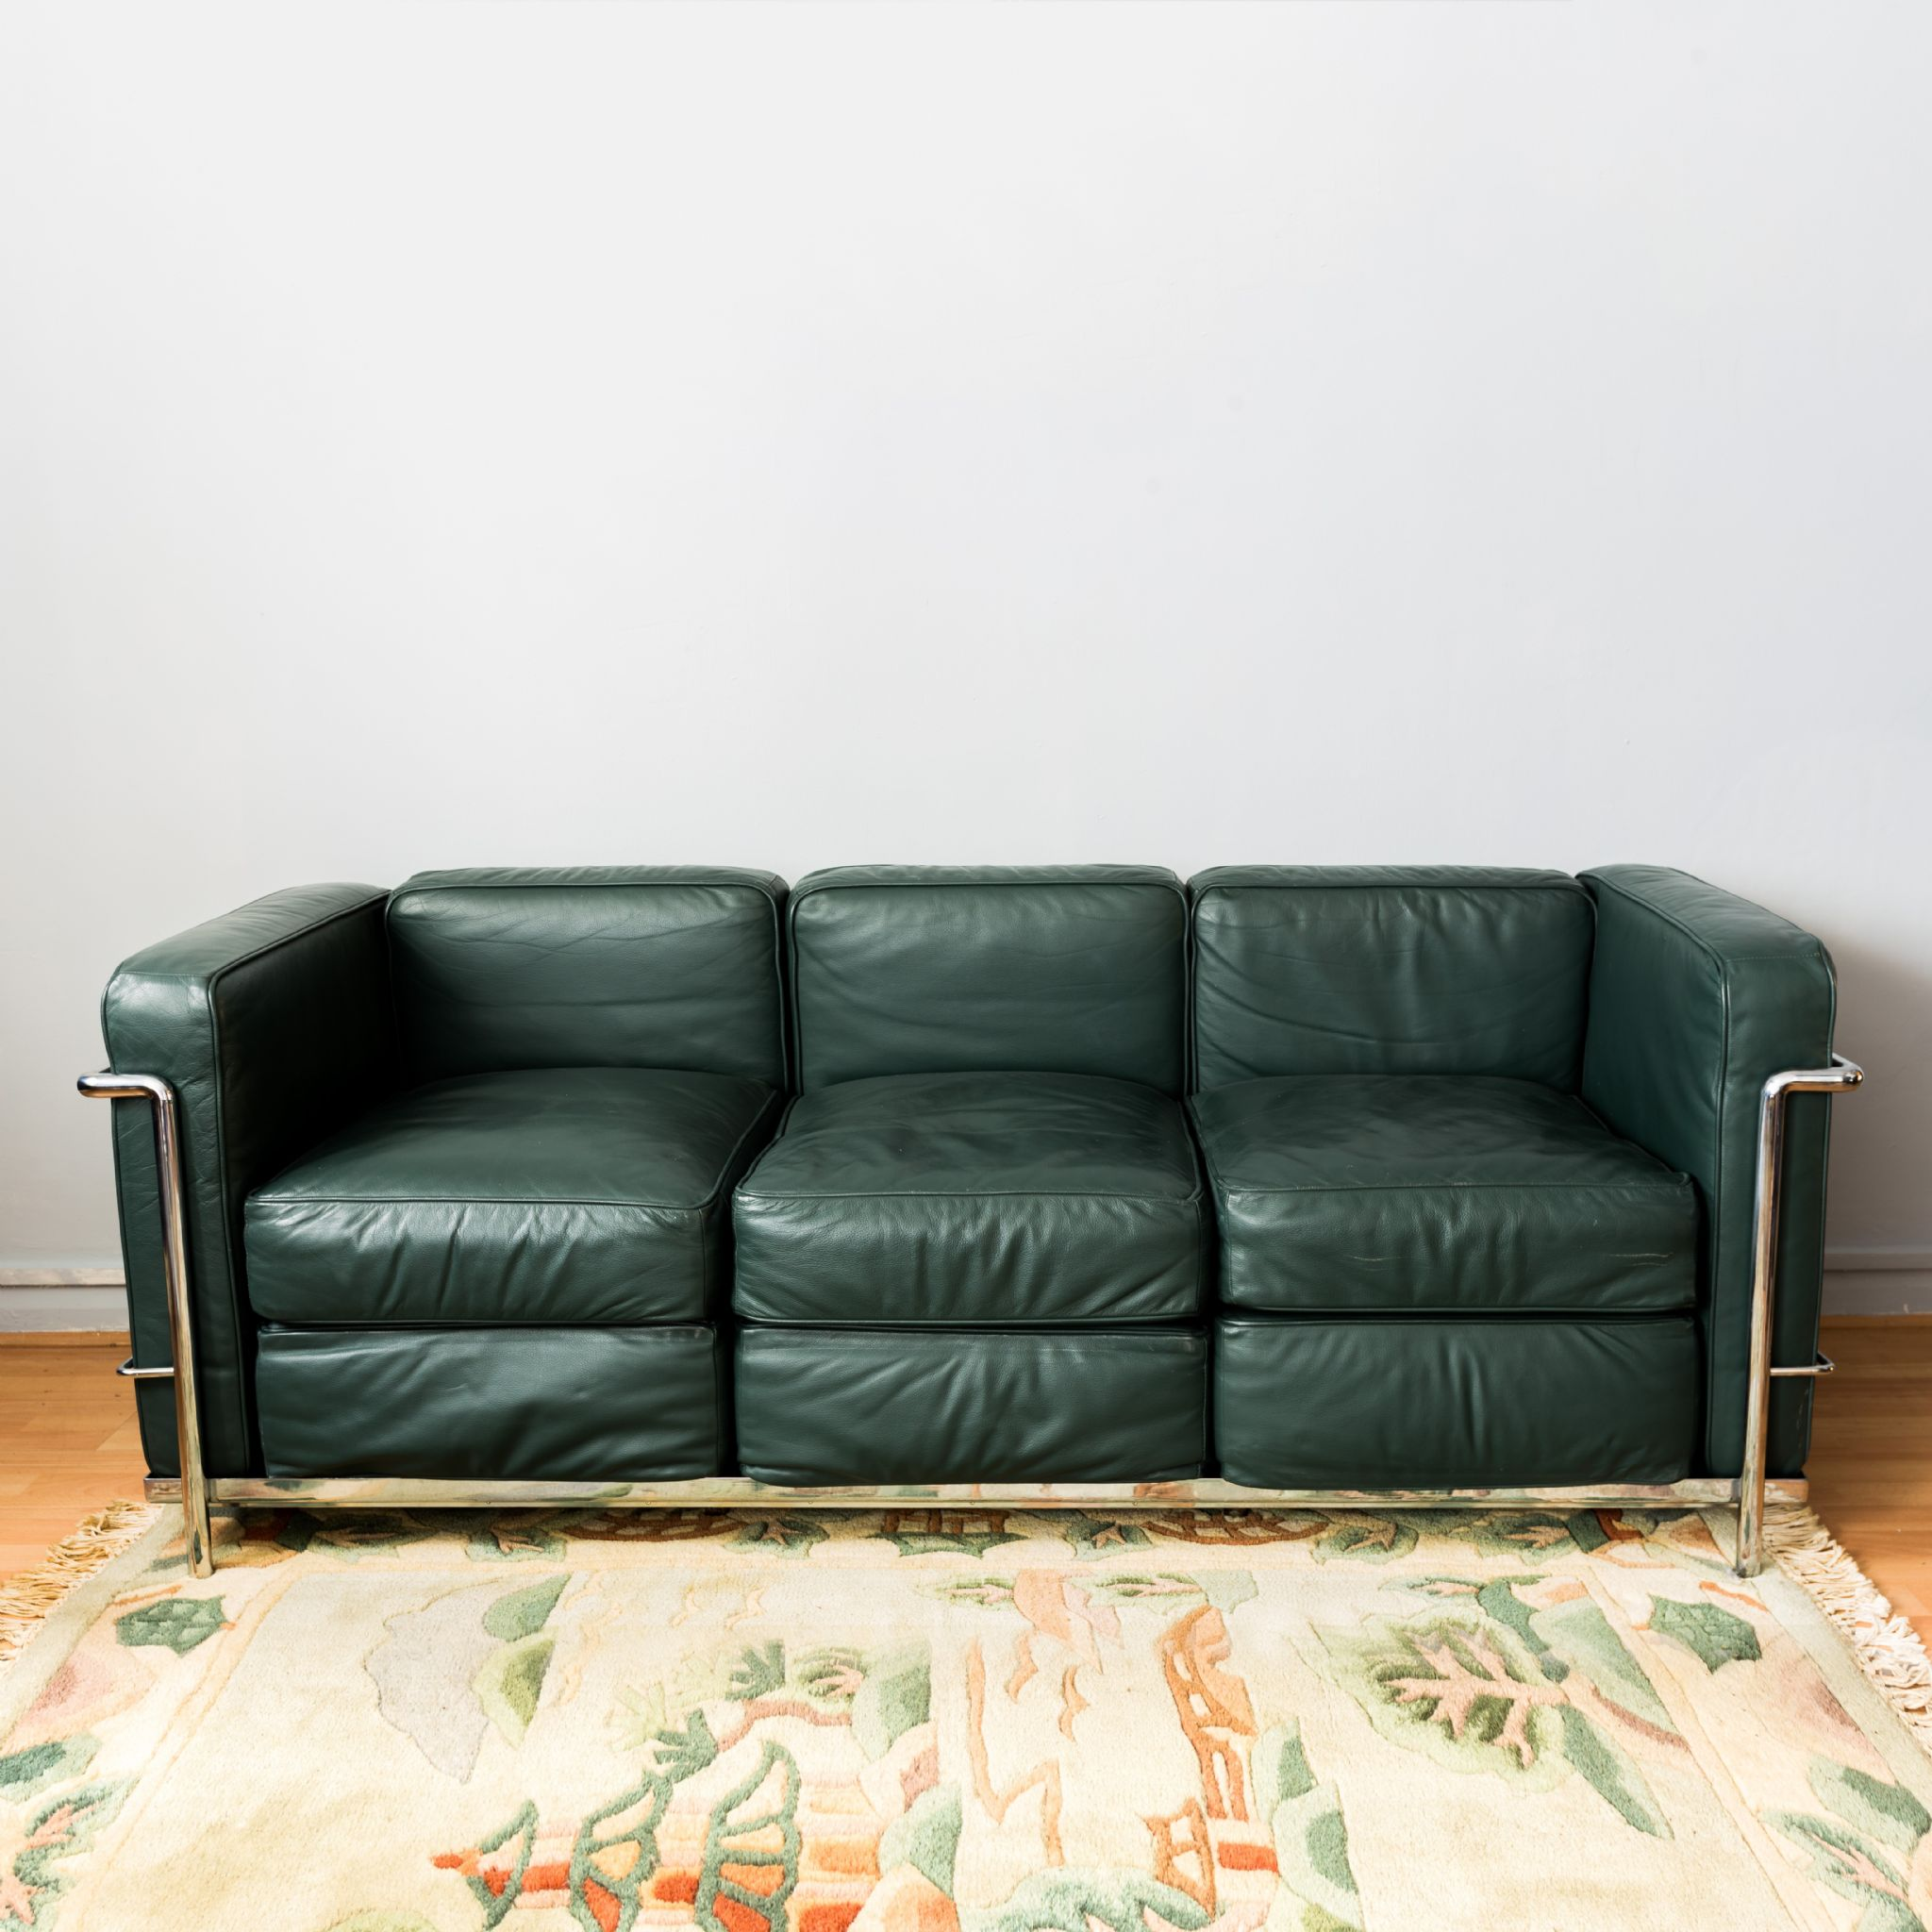 stylish sofa uk how to clean a cushion le corbusier lc2 green leather